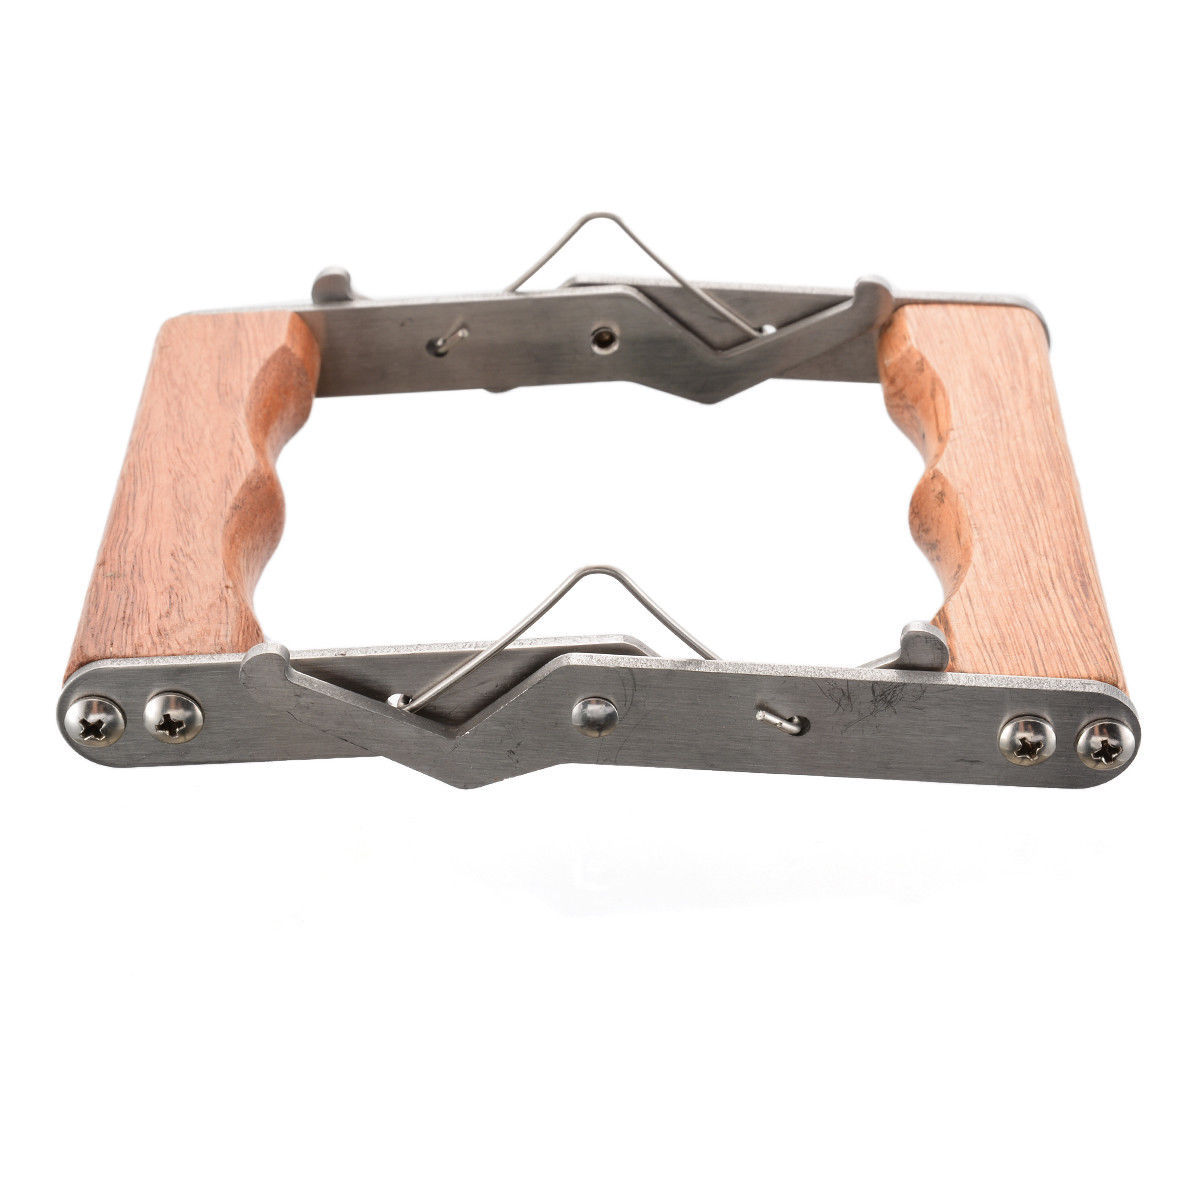 Stainless steel Frame grip with wooden handle